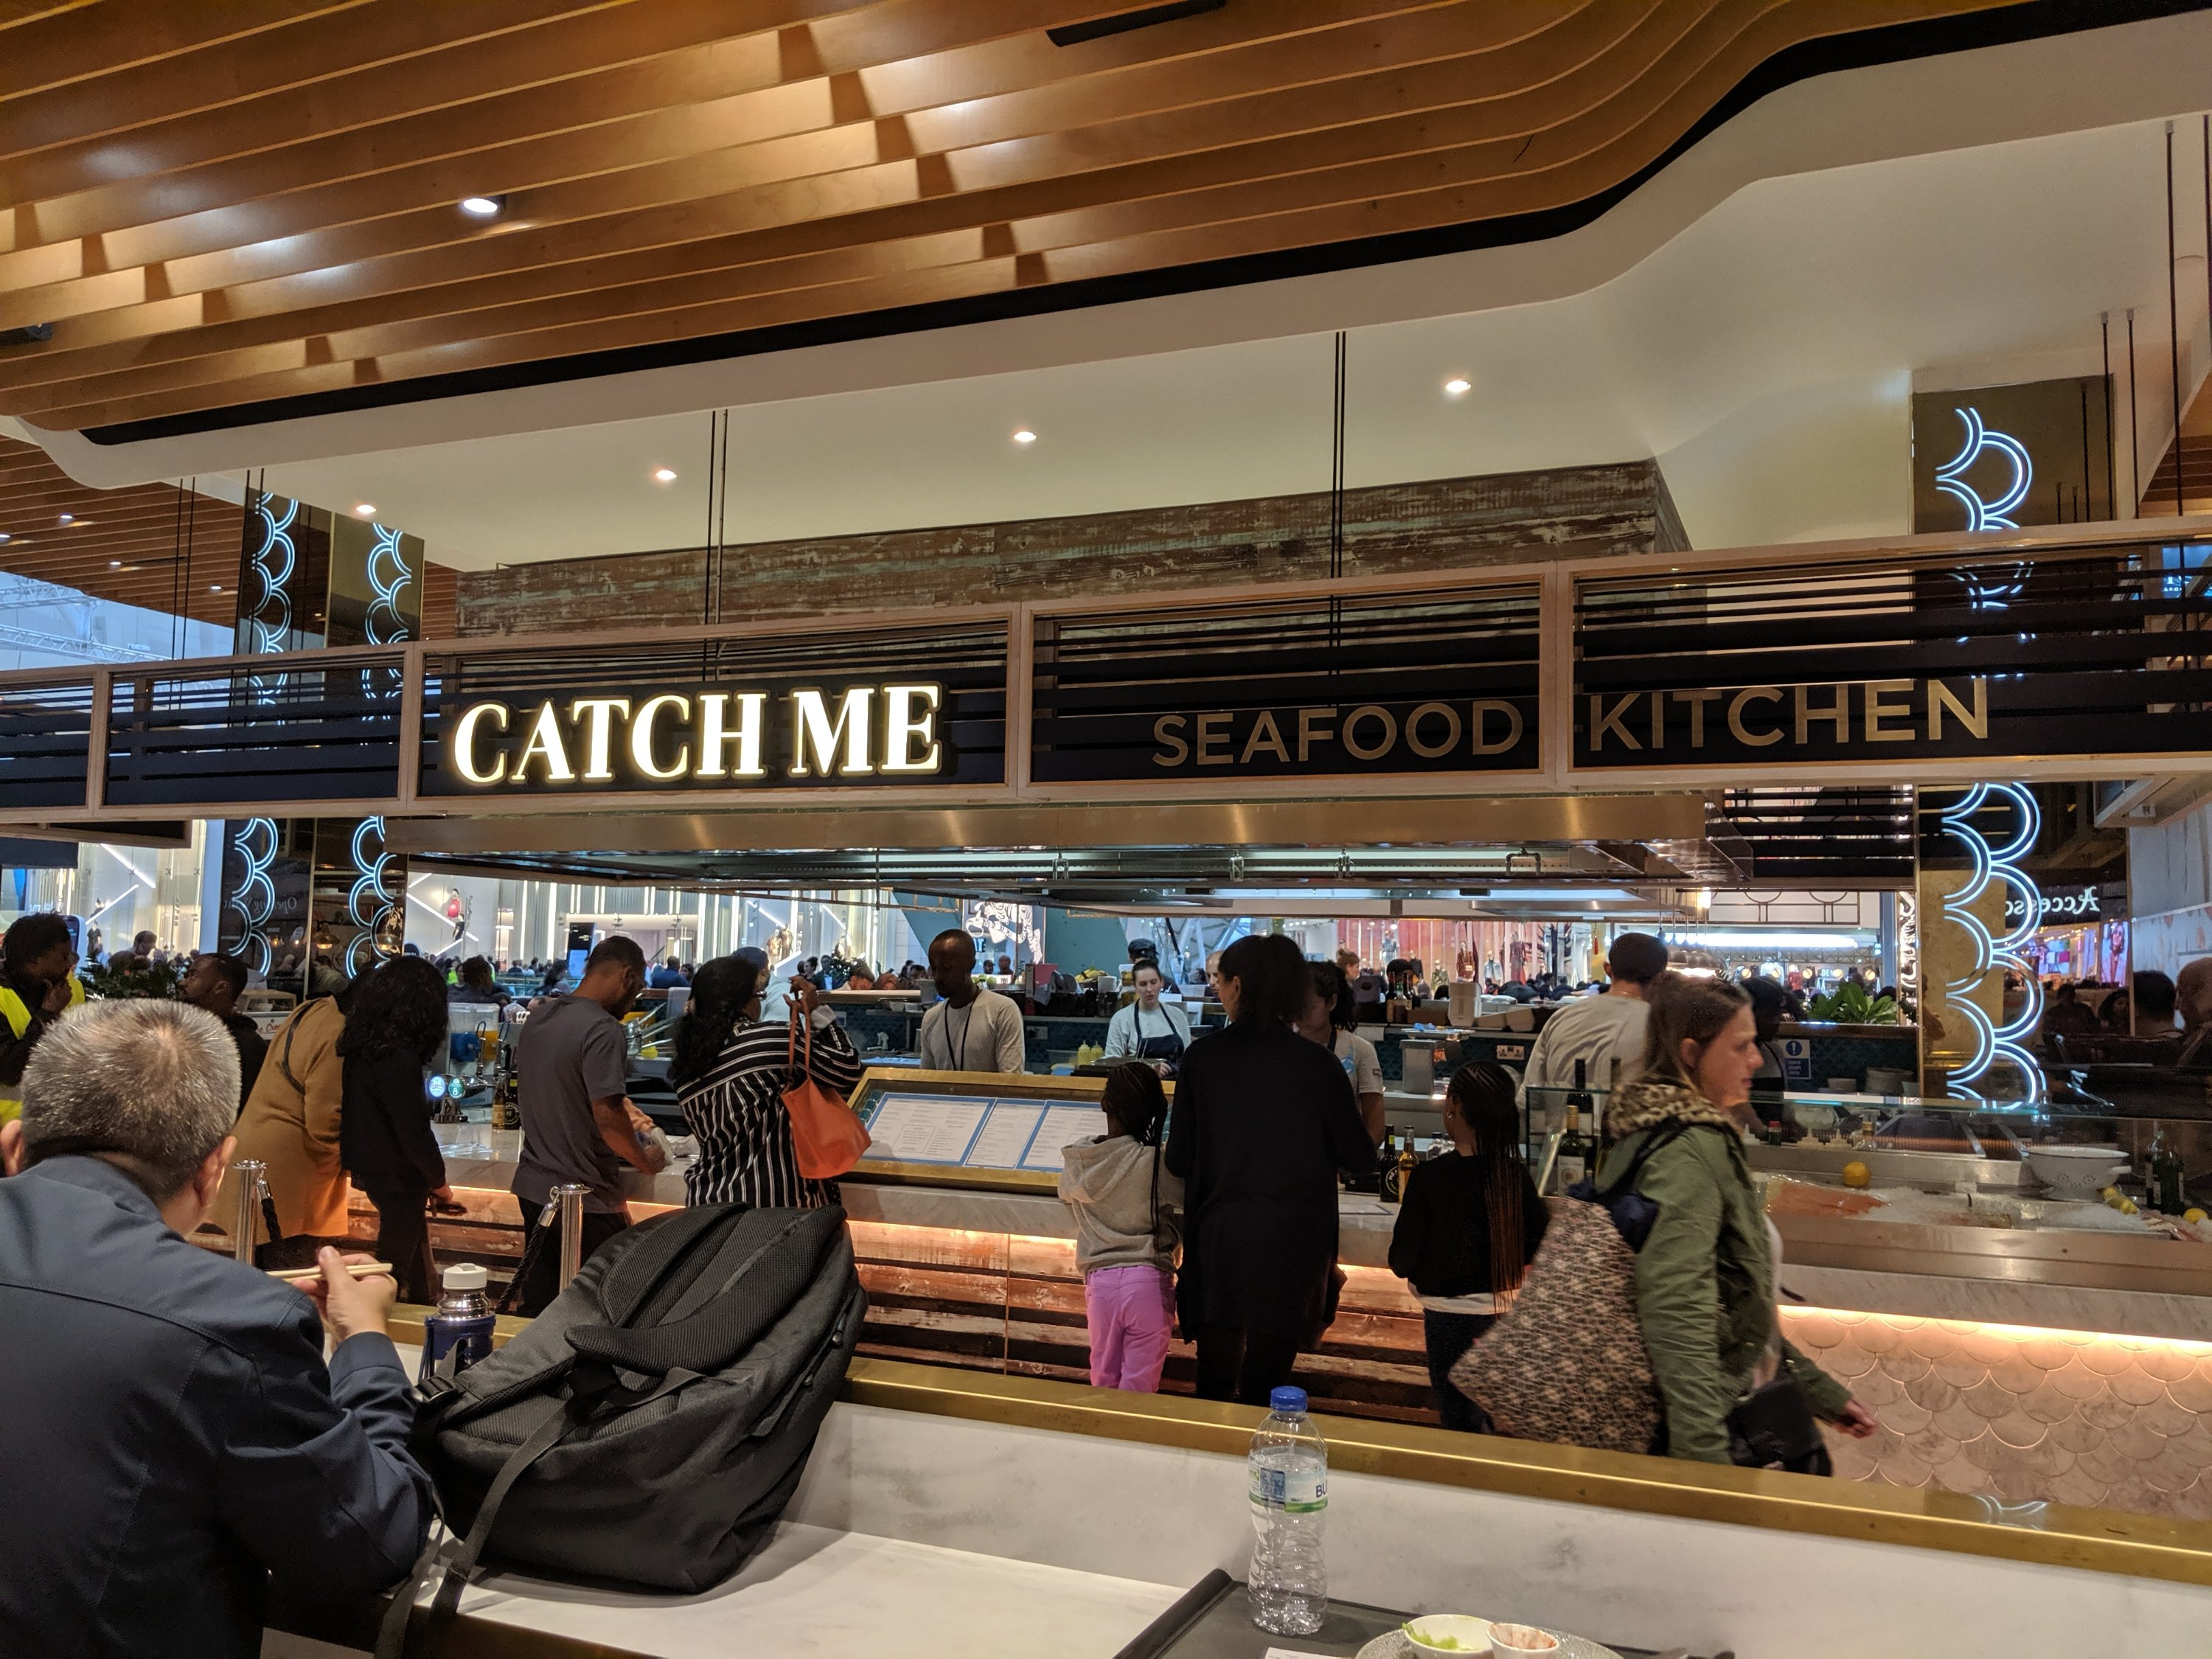 Catch Me restaurant